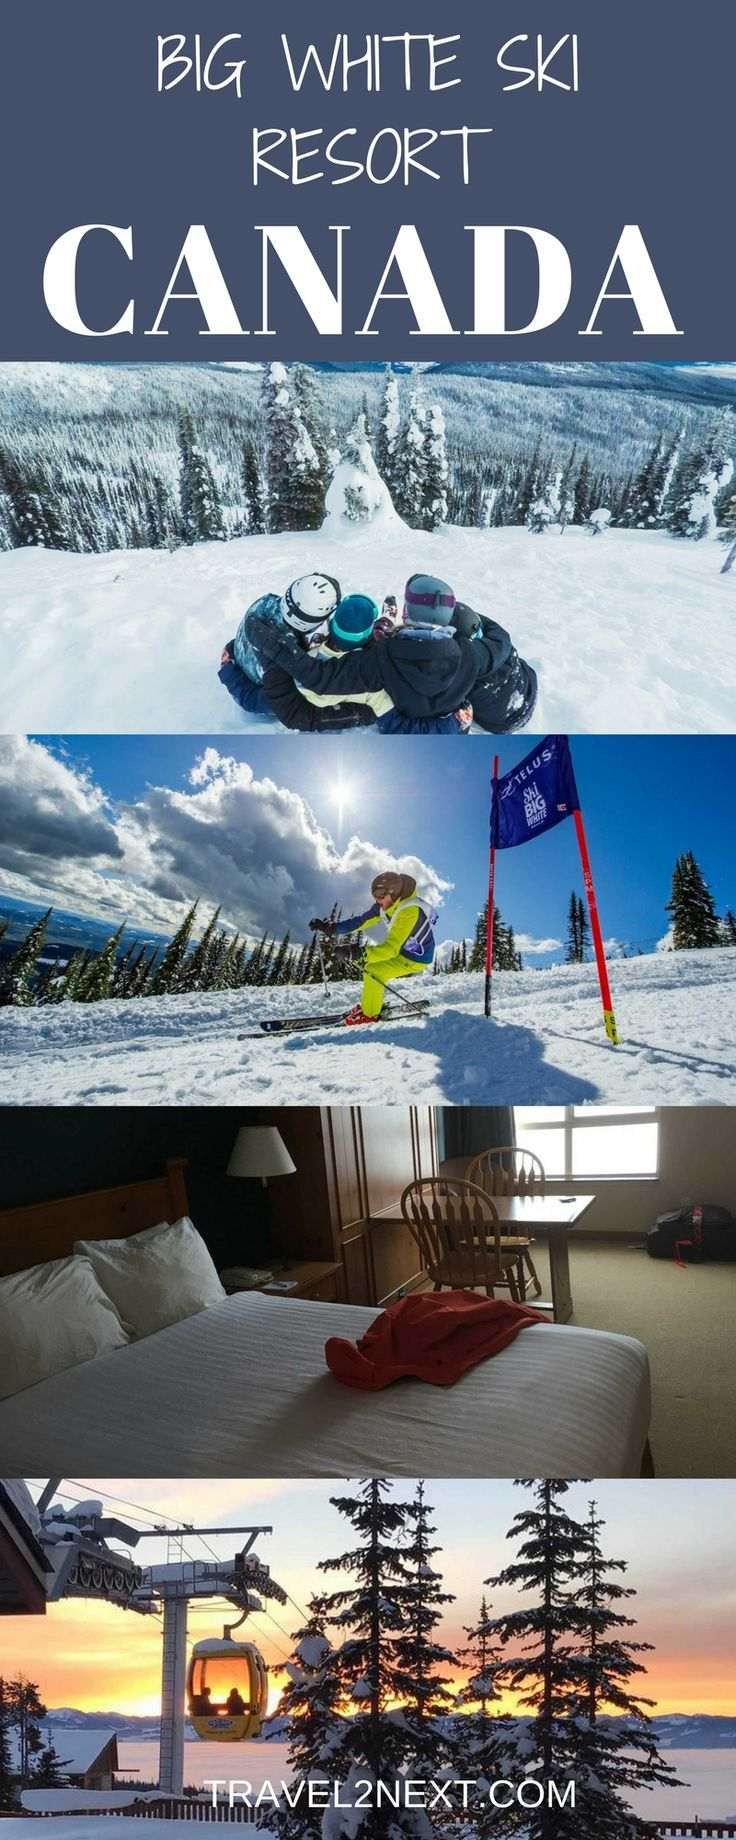 If you're after a relaxed ski holiday, Big White Ski Resort near Kelowna in British Columbia, Canada, is a good family friendly option. Here are eight reasons to choose Big White for your next family skiing holiday.